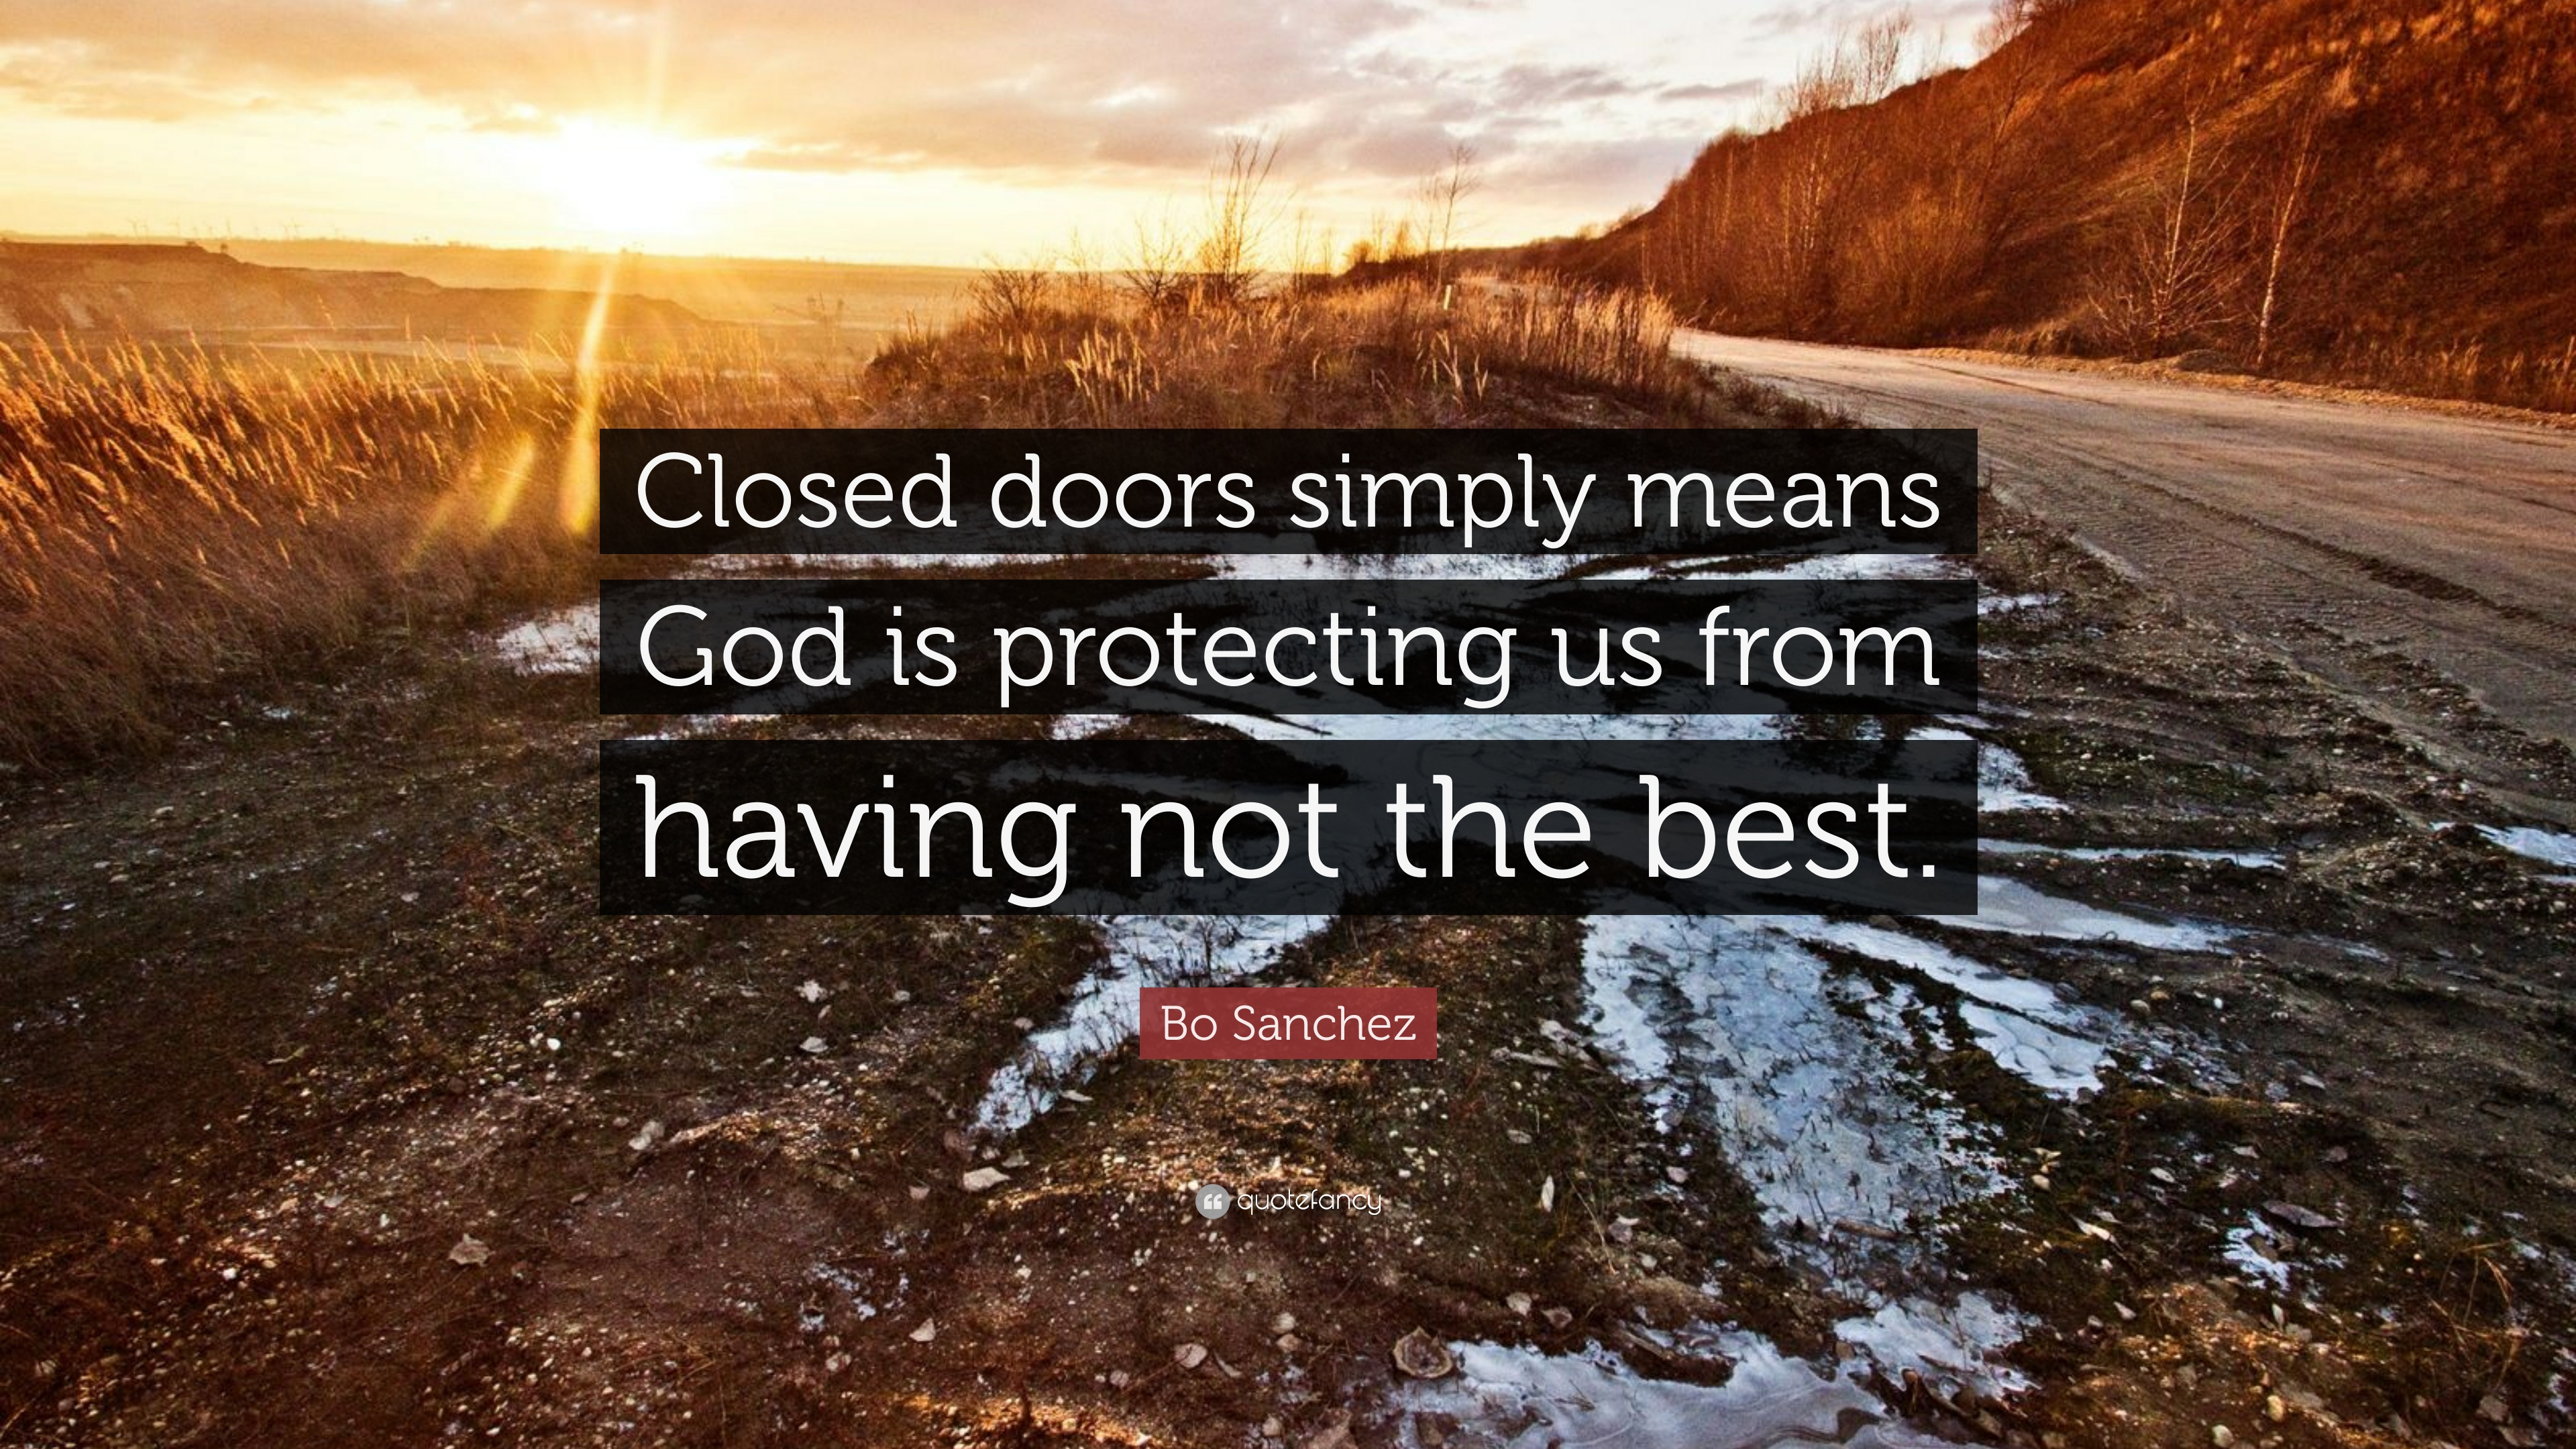 Closed-doors-simply-means-God-is-protecting-us